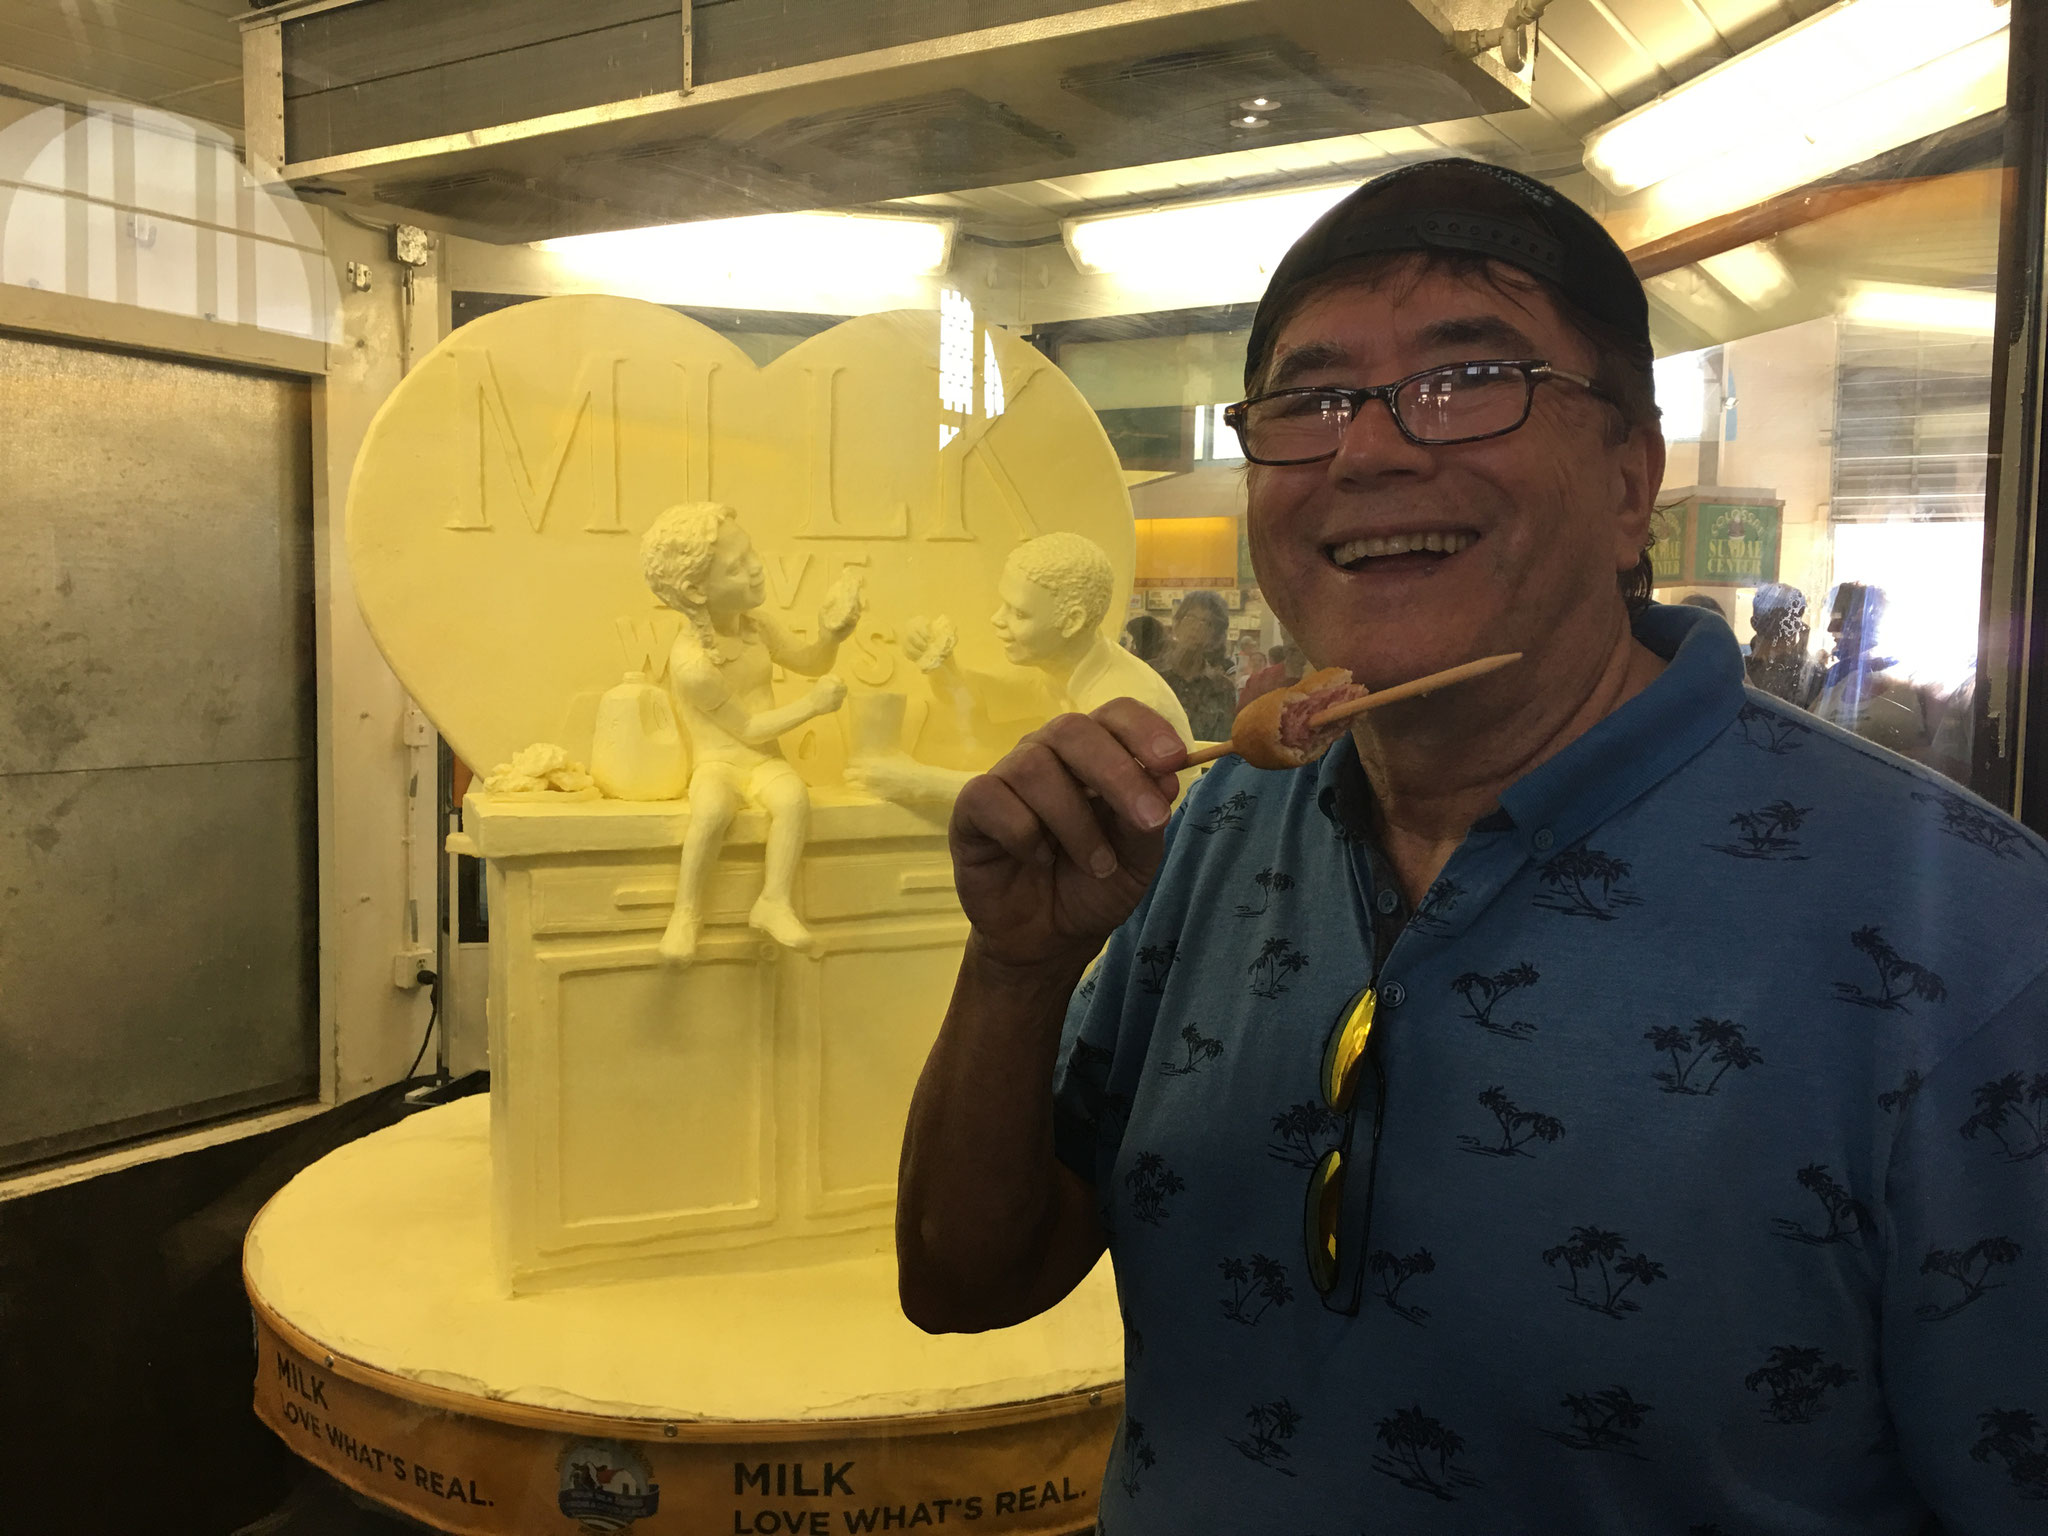 the New York State Fair, 2019  The butter sculpture